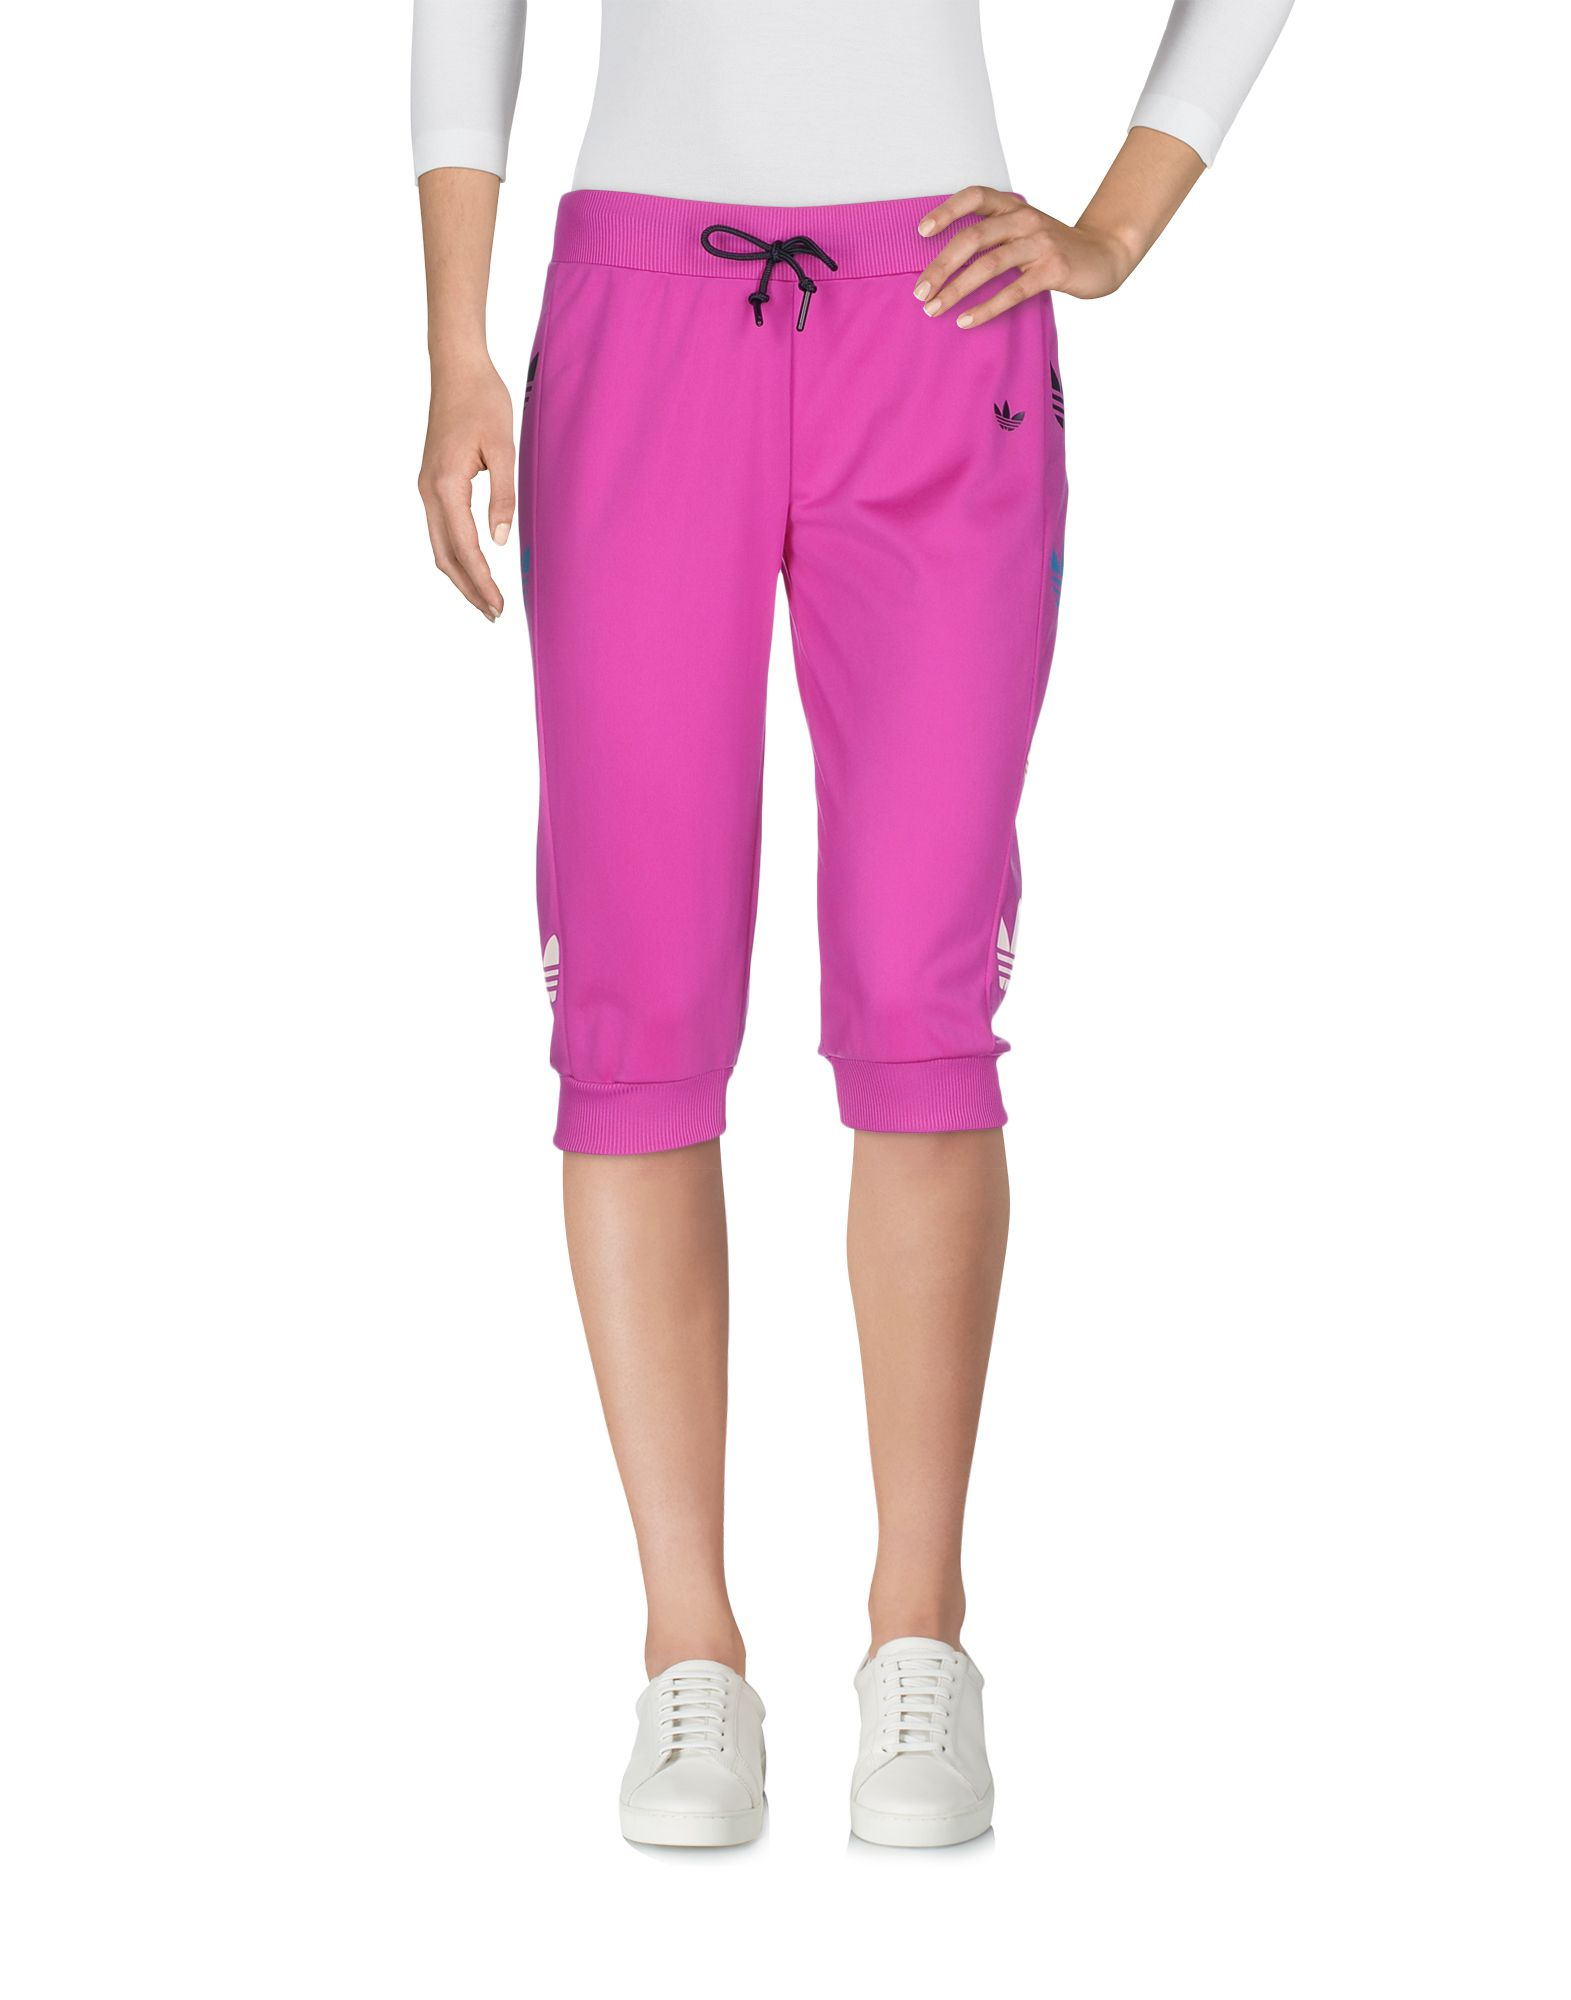 63e66a8ccb92 Adidas Originals Cropped Pants   Culottes In Purple